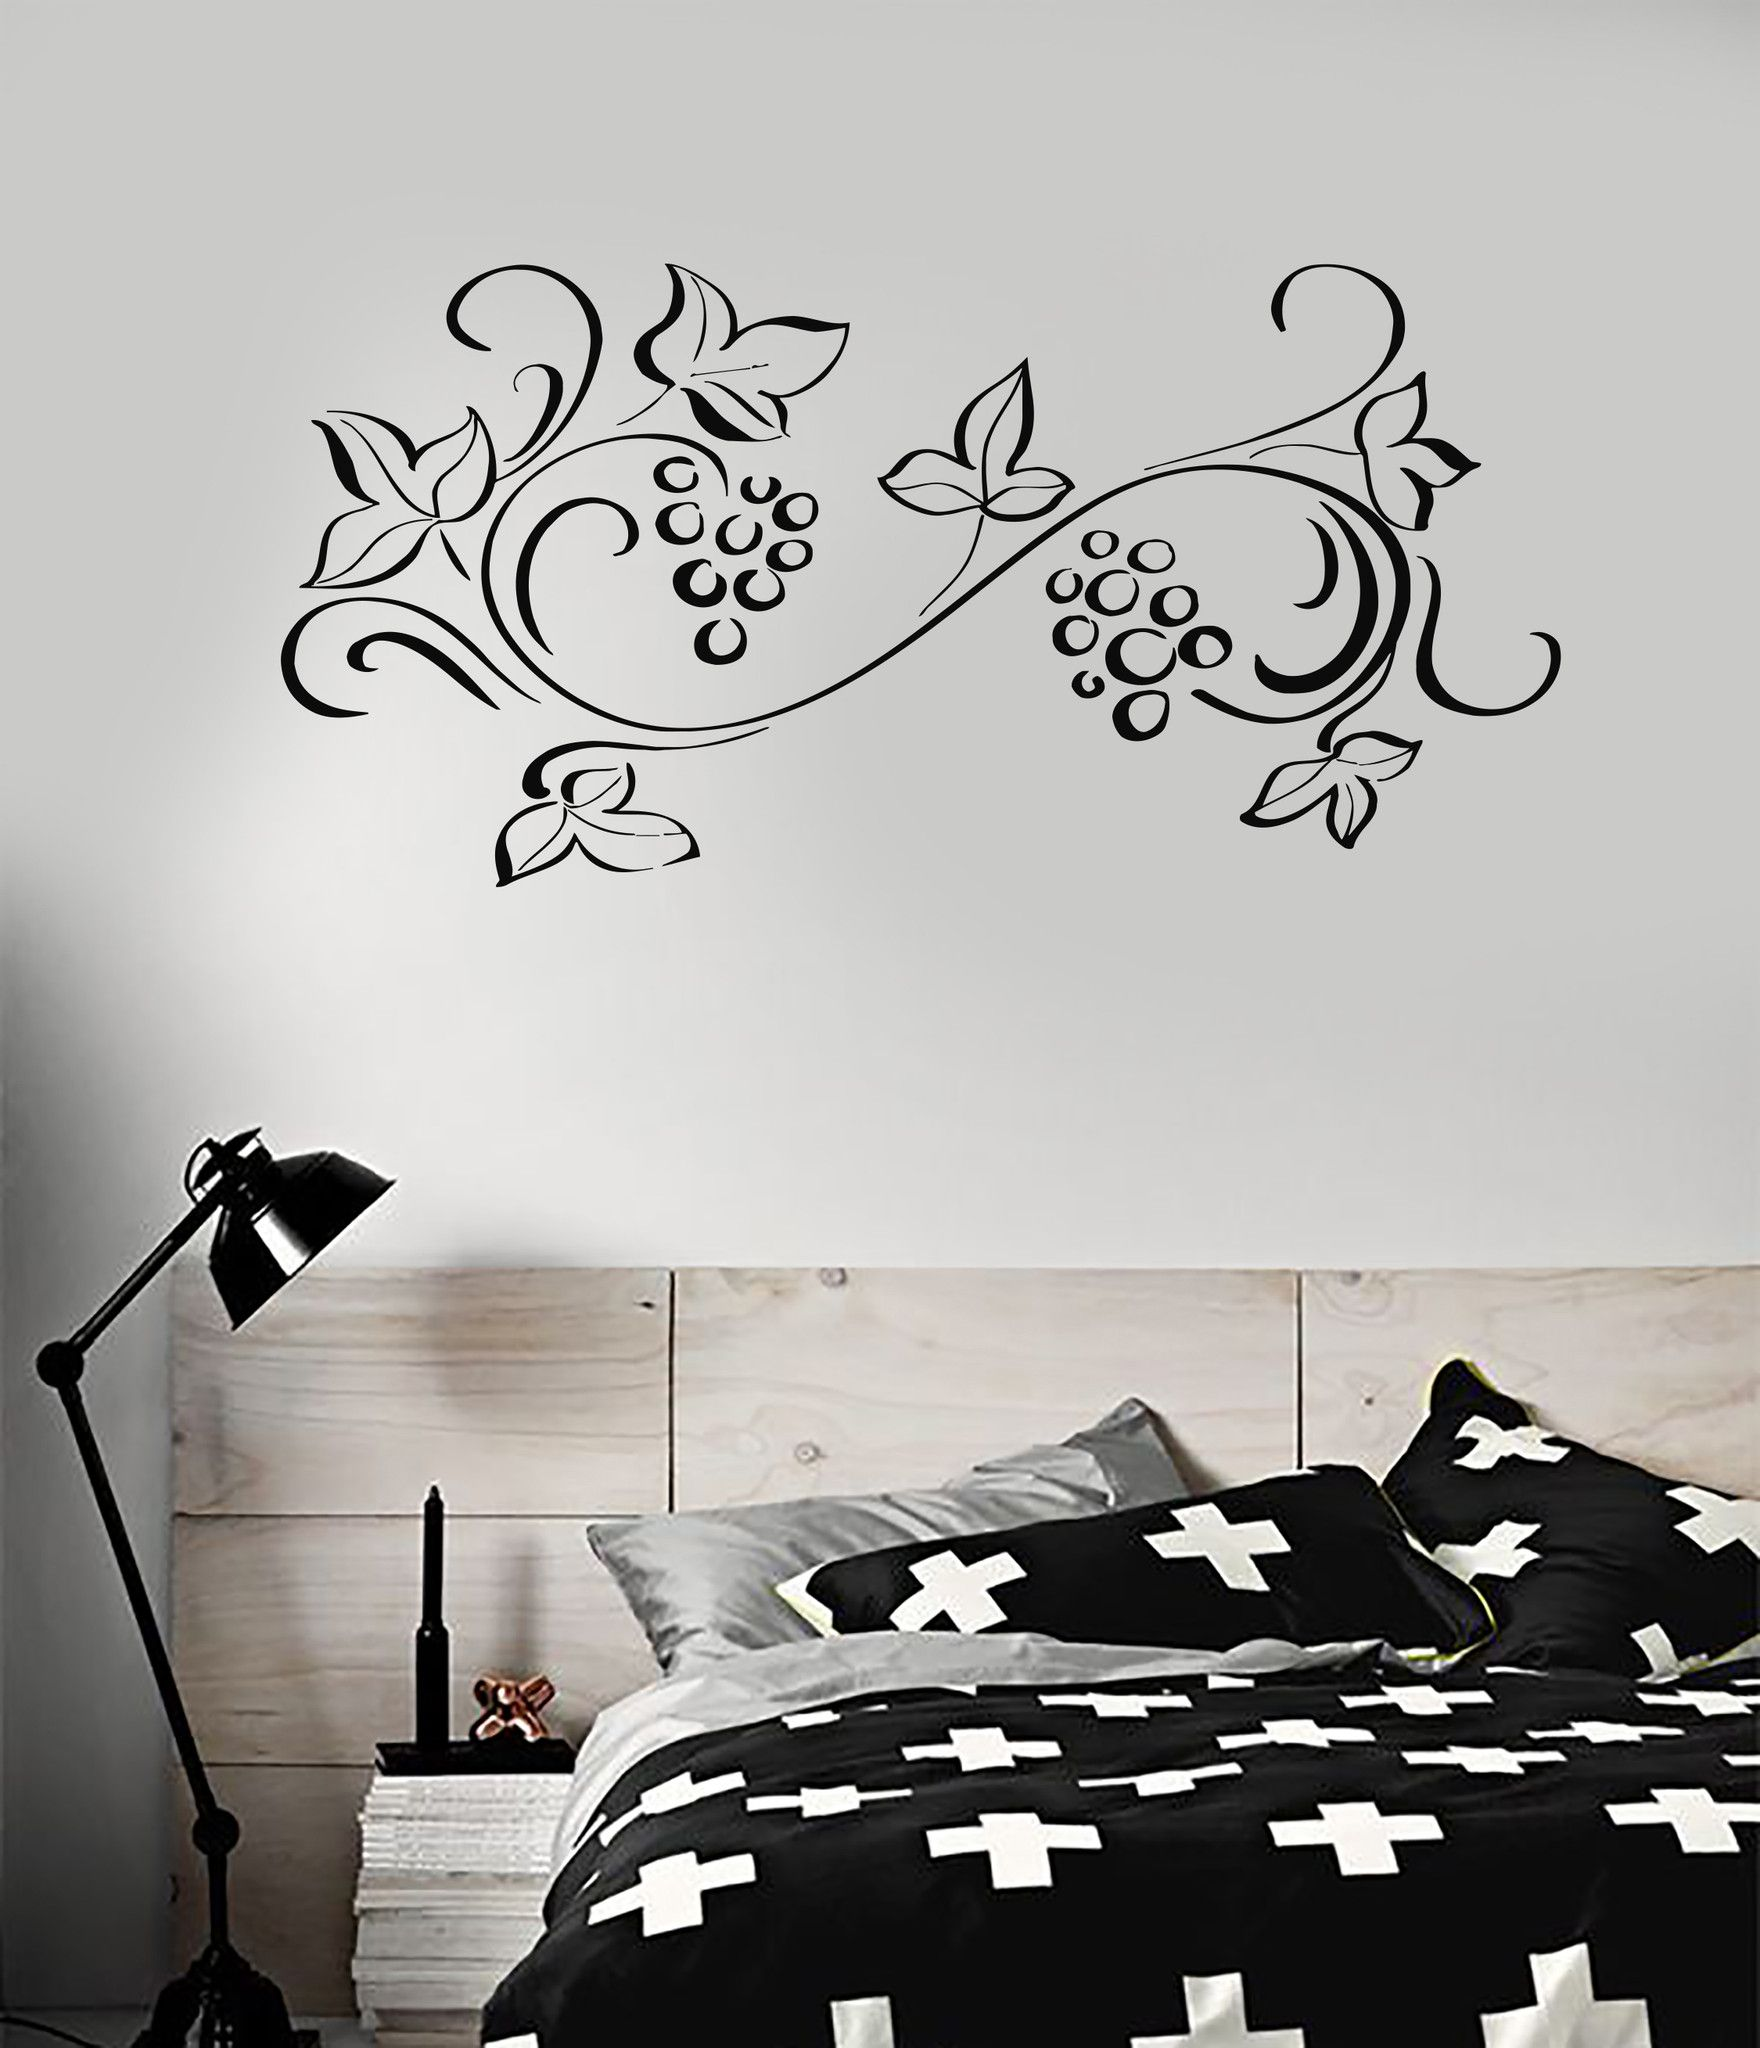 Vinyl Decal Floral Ornament Pattern Flower Room Decoration Wall Stickers (ig2771)